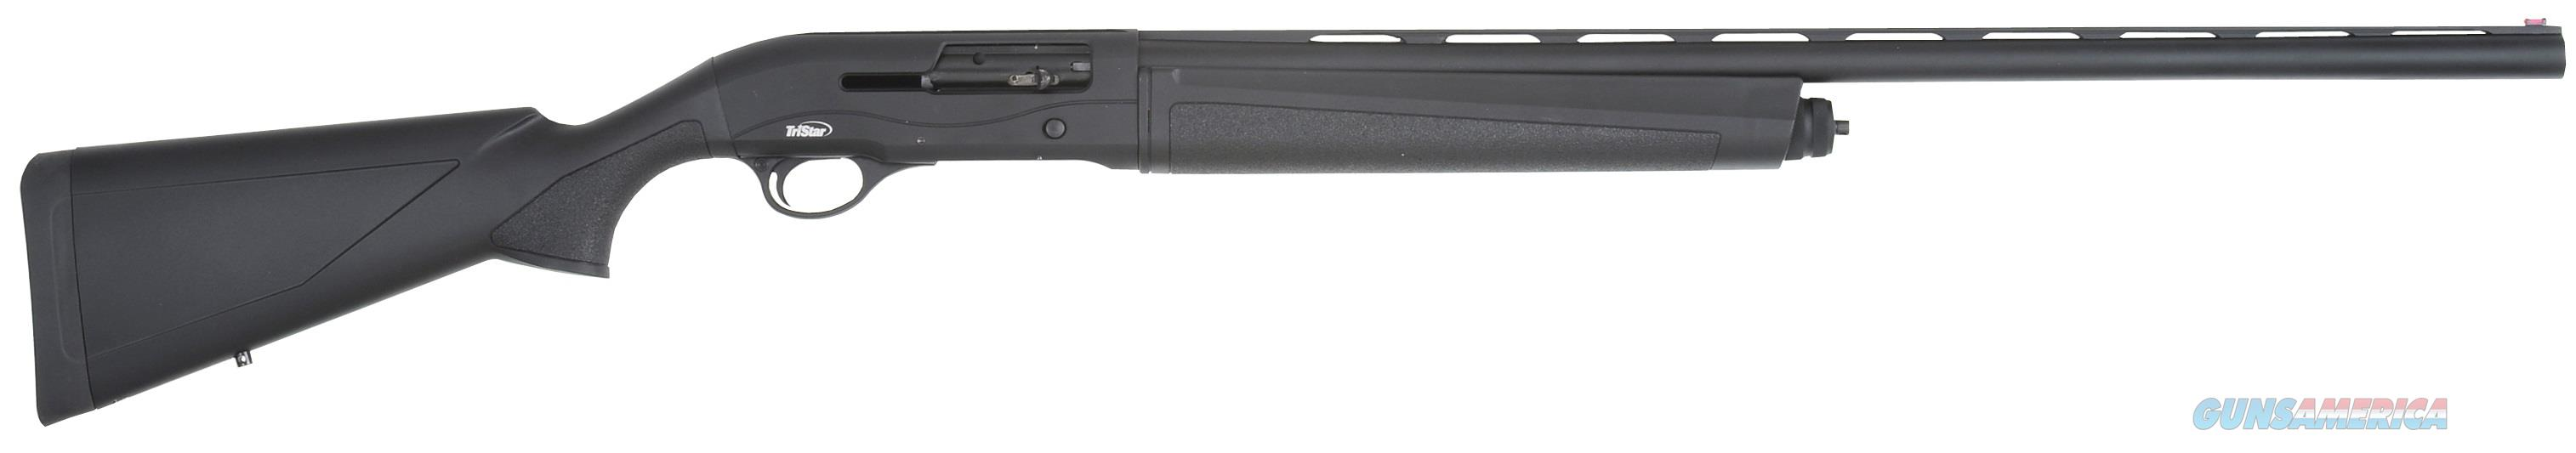 "TriStar Arms Raptor Semi-Automatic 12 Gauge Black 28"" 5rds 20128   Guns > Shotguns > Tristar Shotguns"